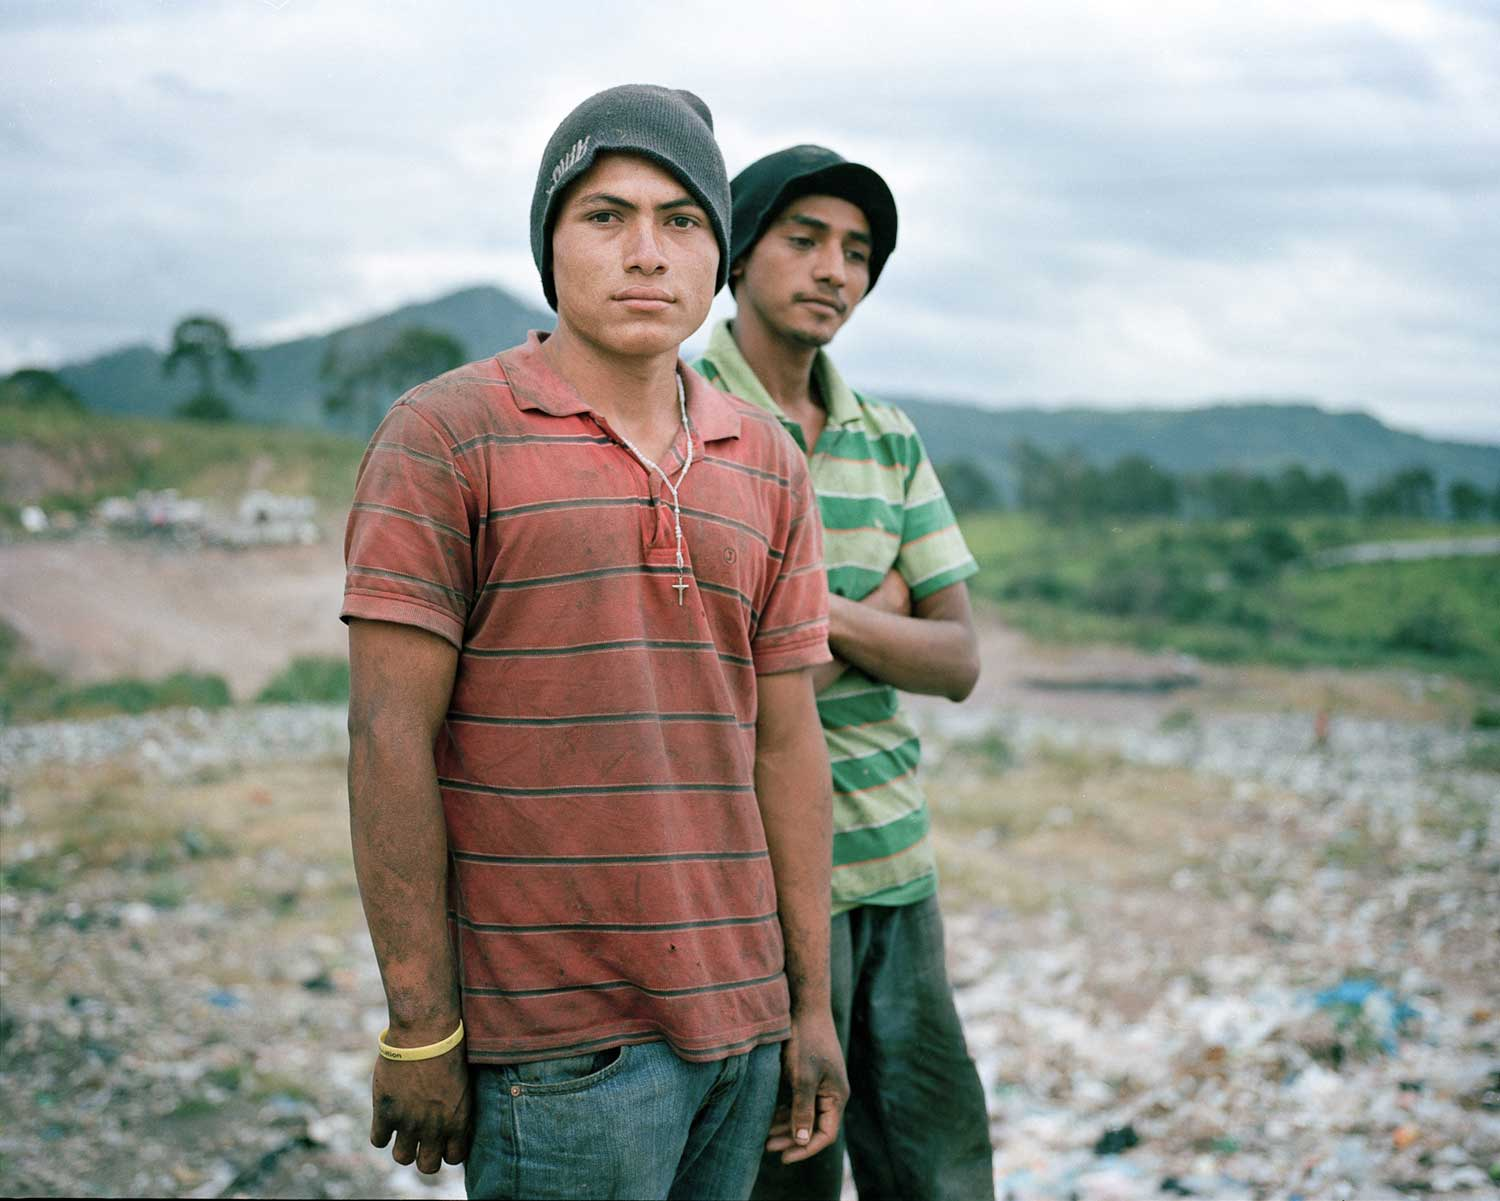 Angel and Gerson pose for a portrait in the municipal dump where they work in Tegucigalpa. This image forms part of Dominic Bracco II's Visionary Award project.